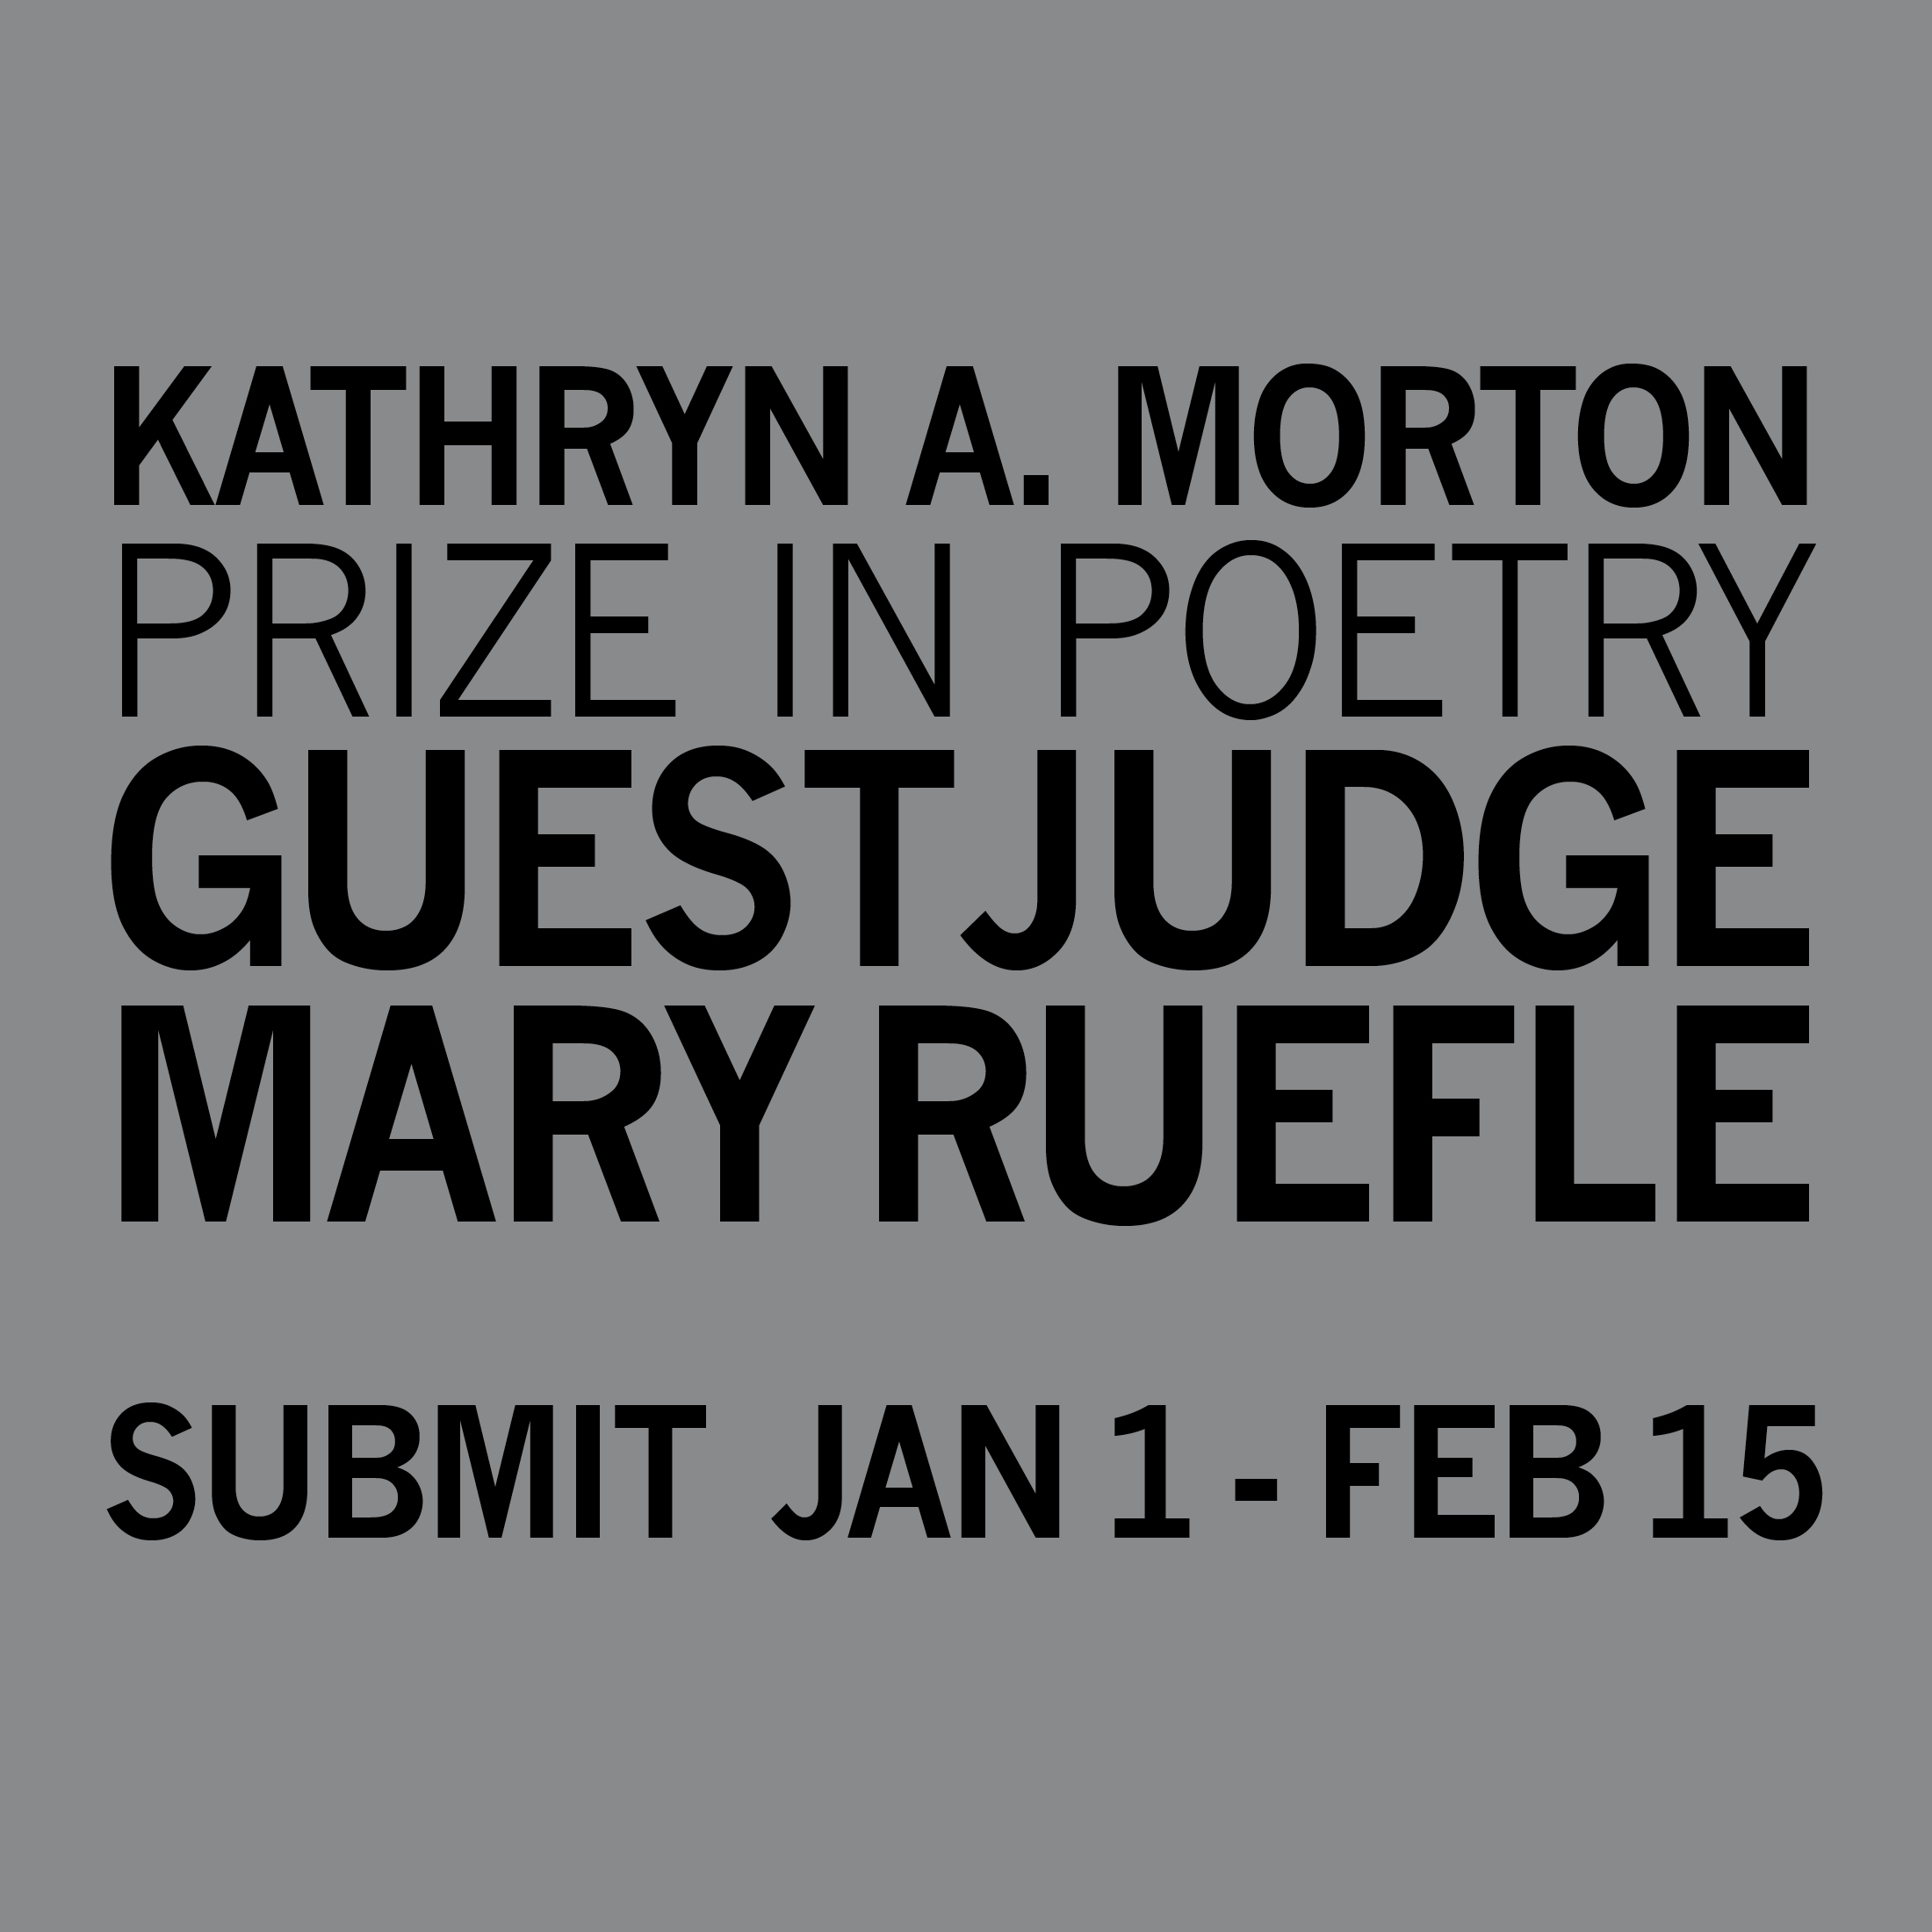 Click to submit now!